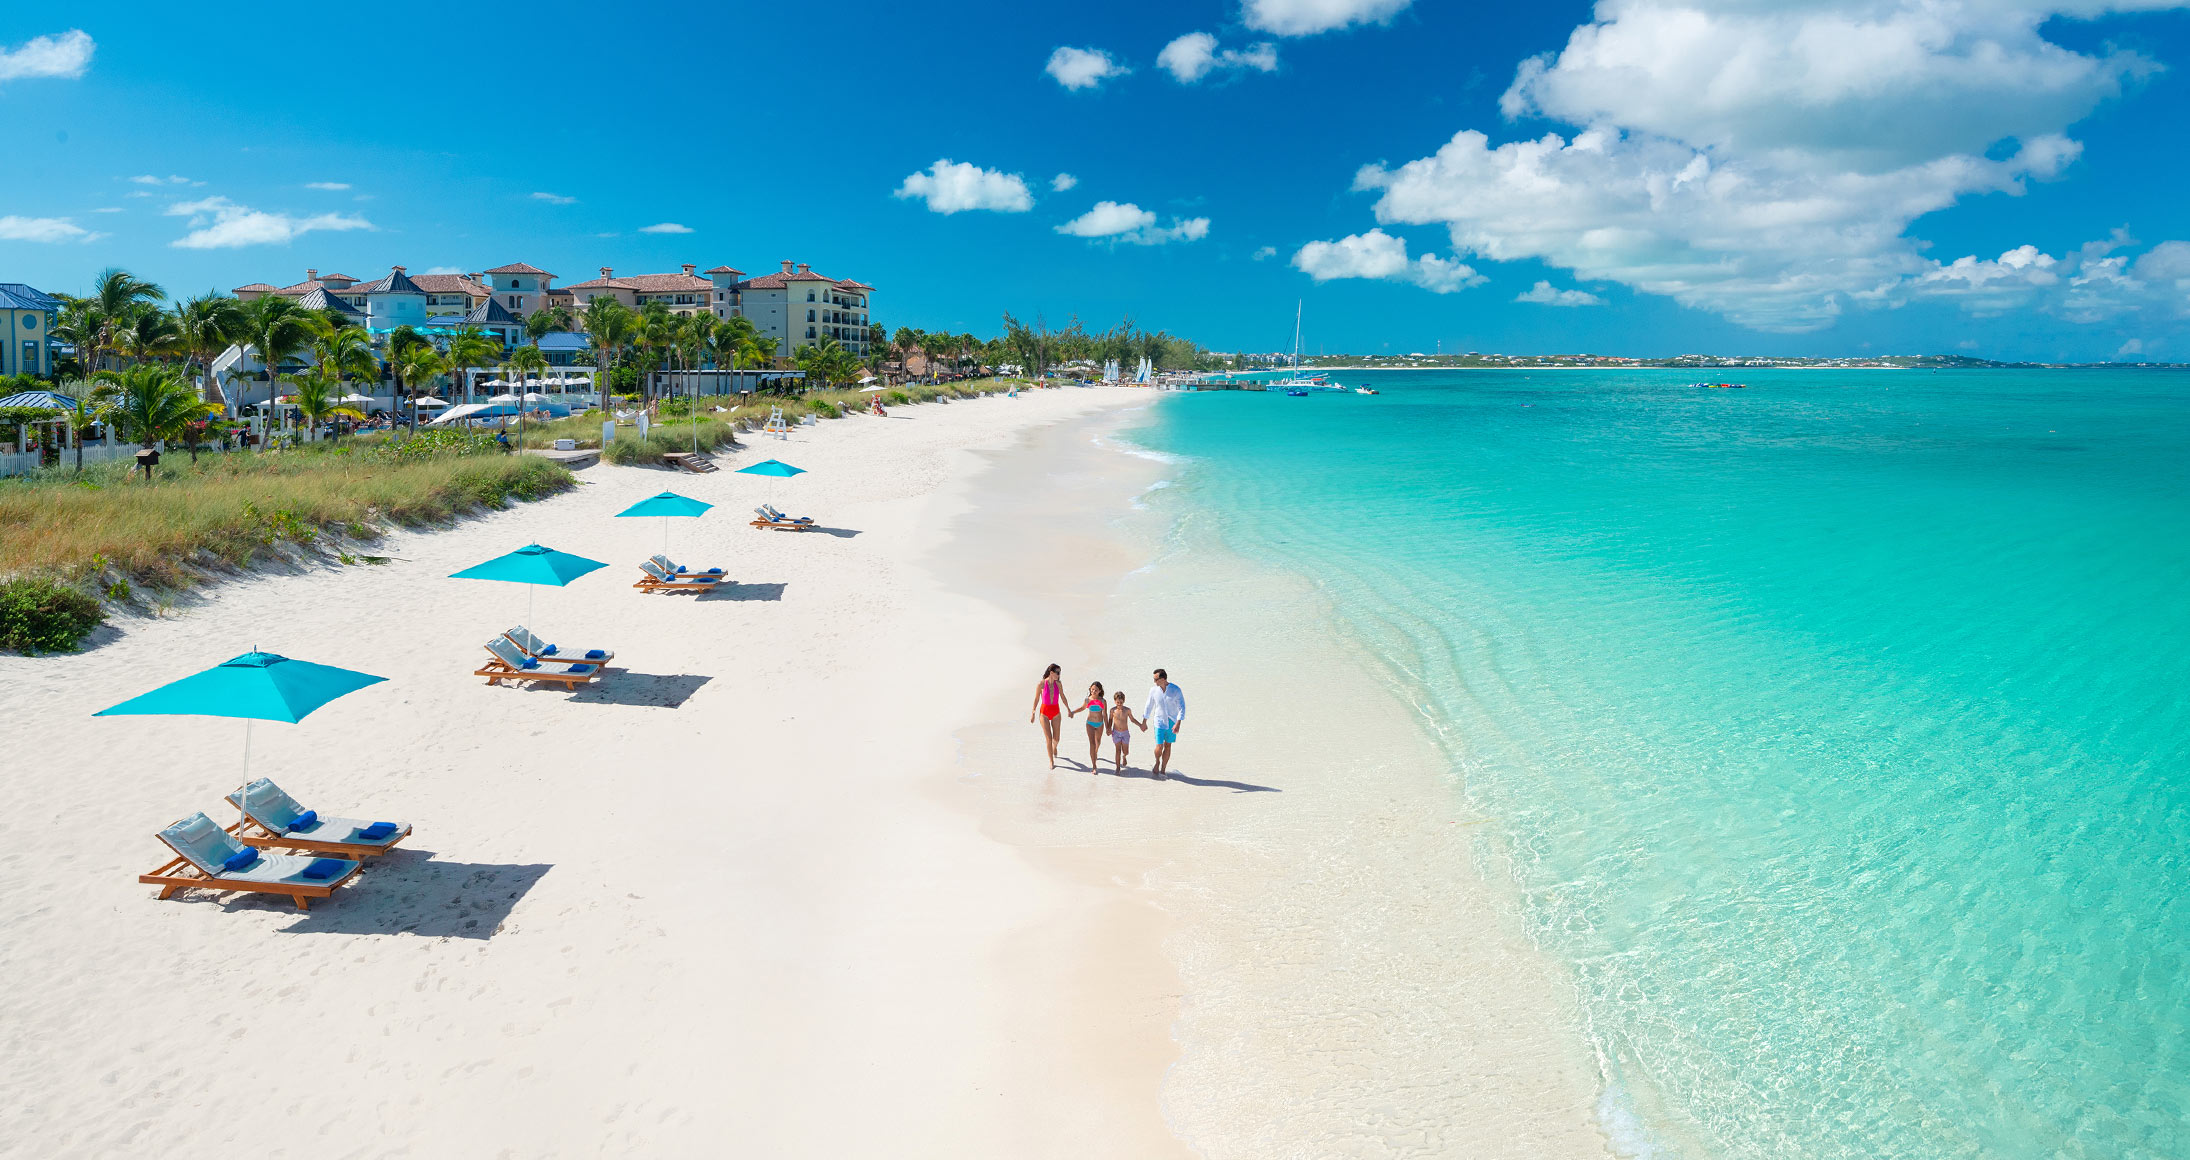 BEACHES Turks & Caicos: 5 All-Inclusive Resorts in 1